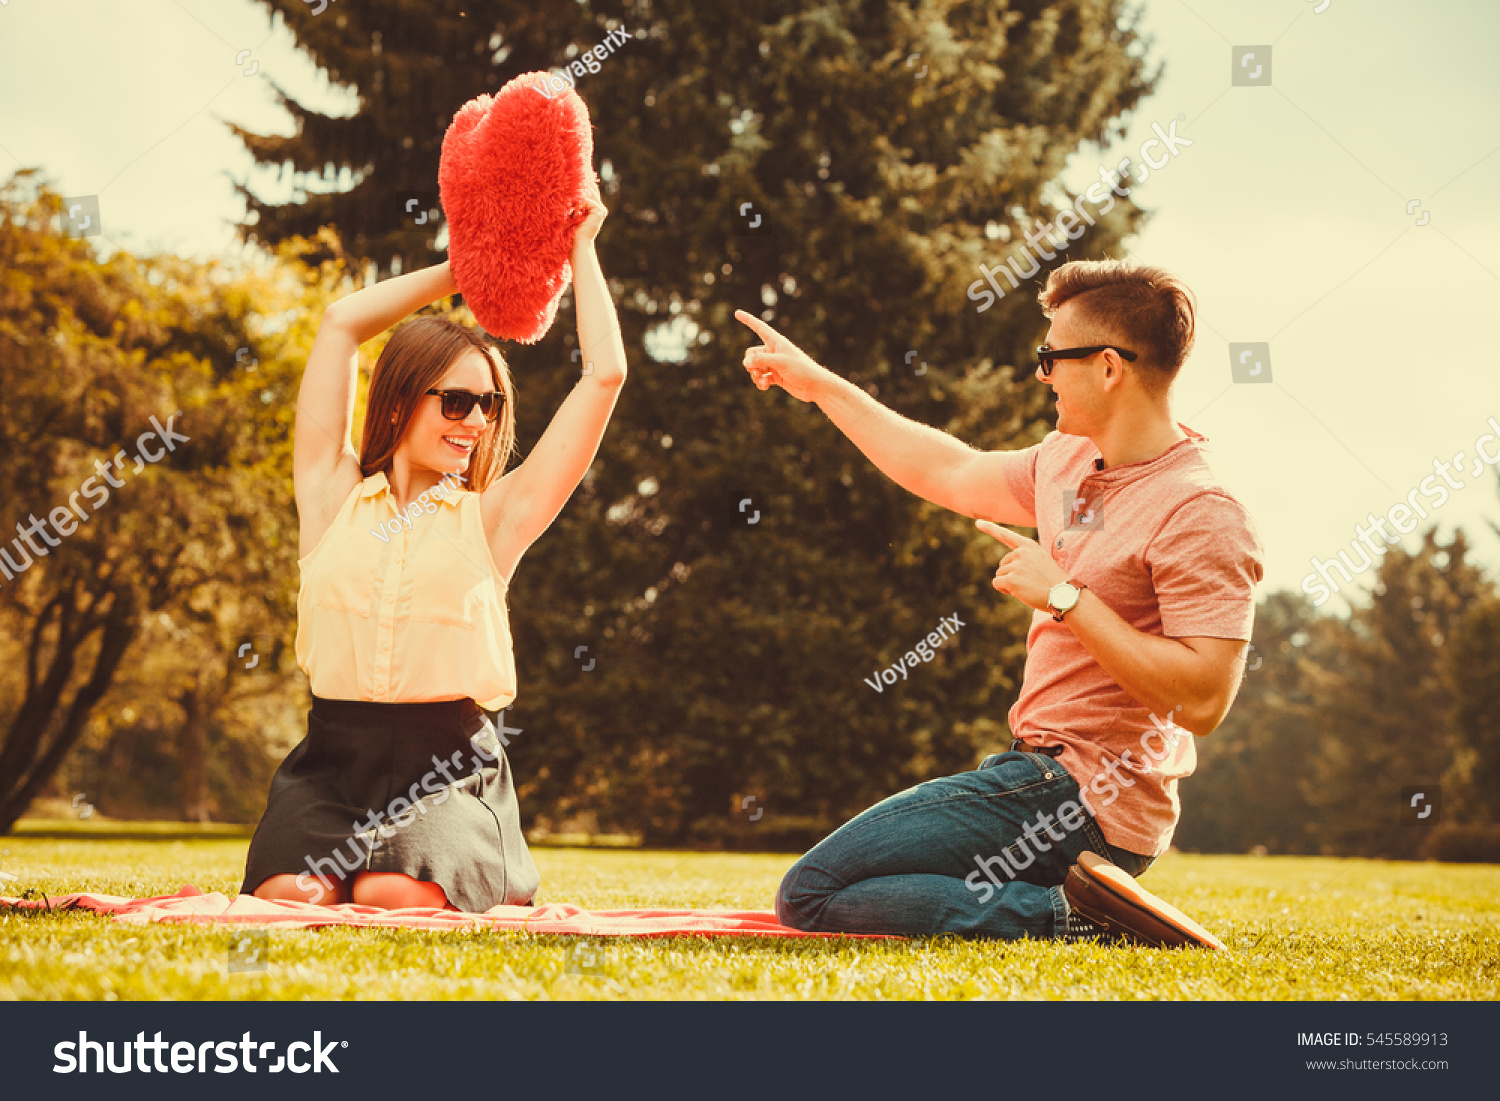 fun dating games for couples